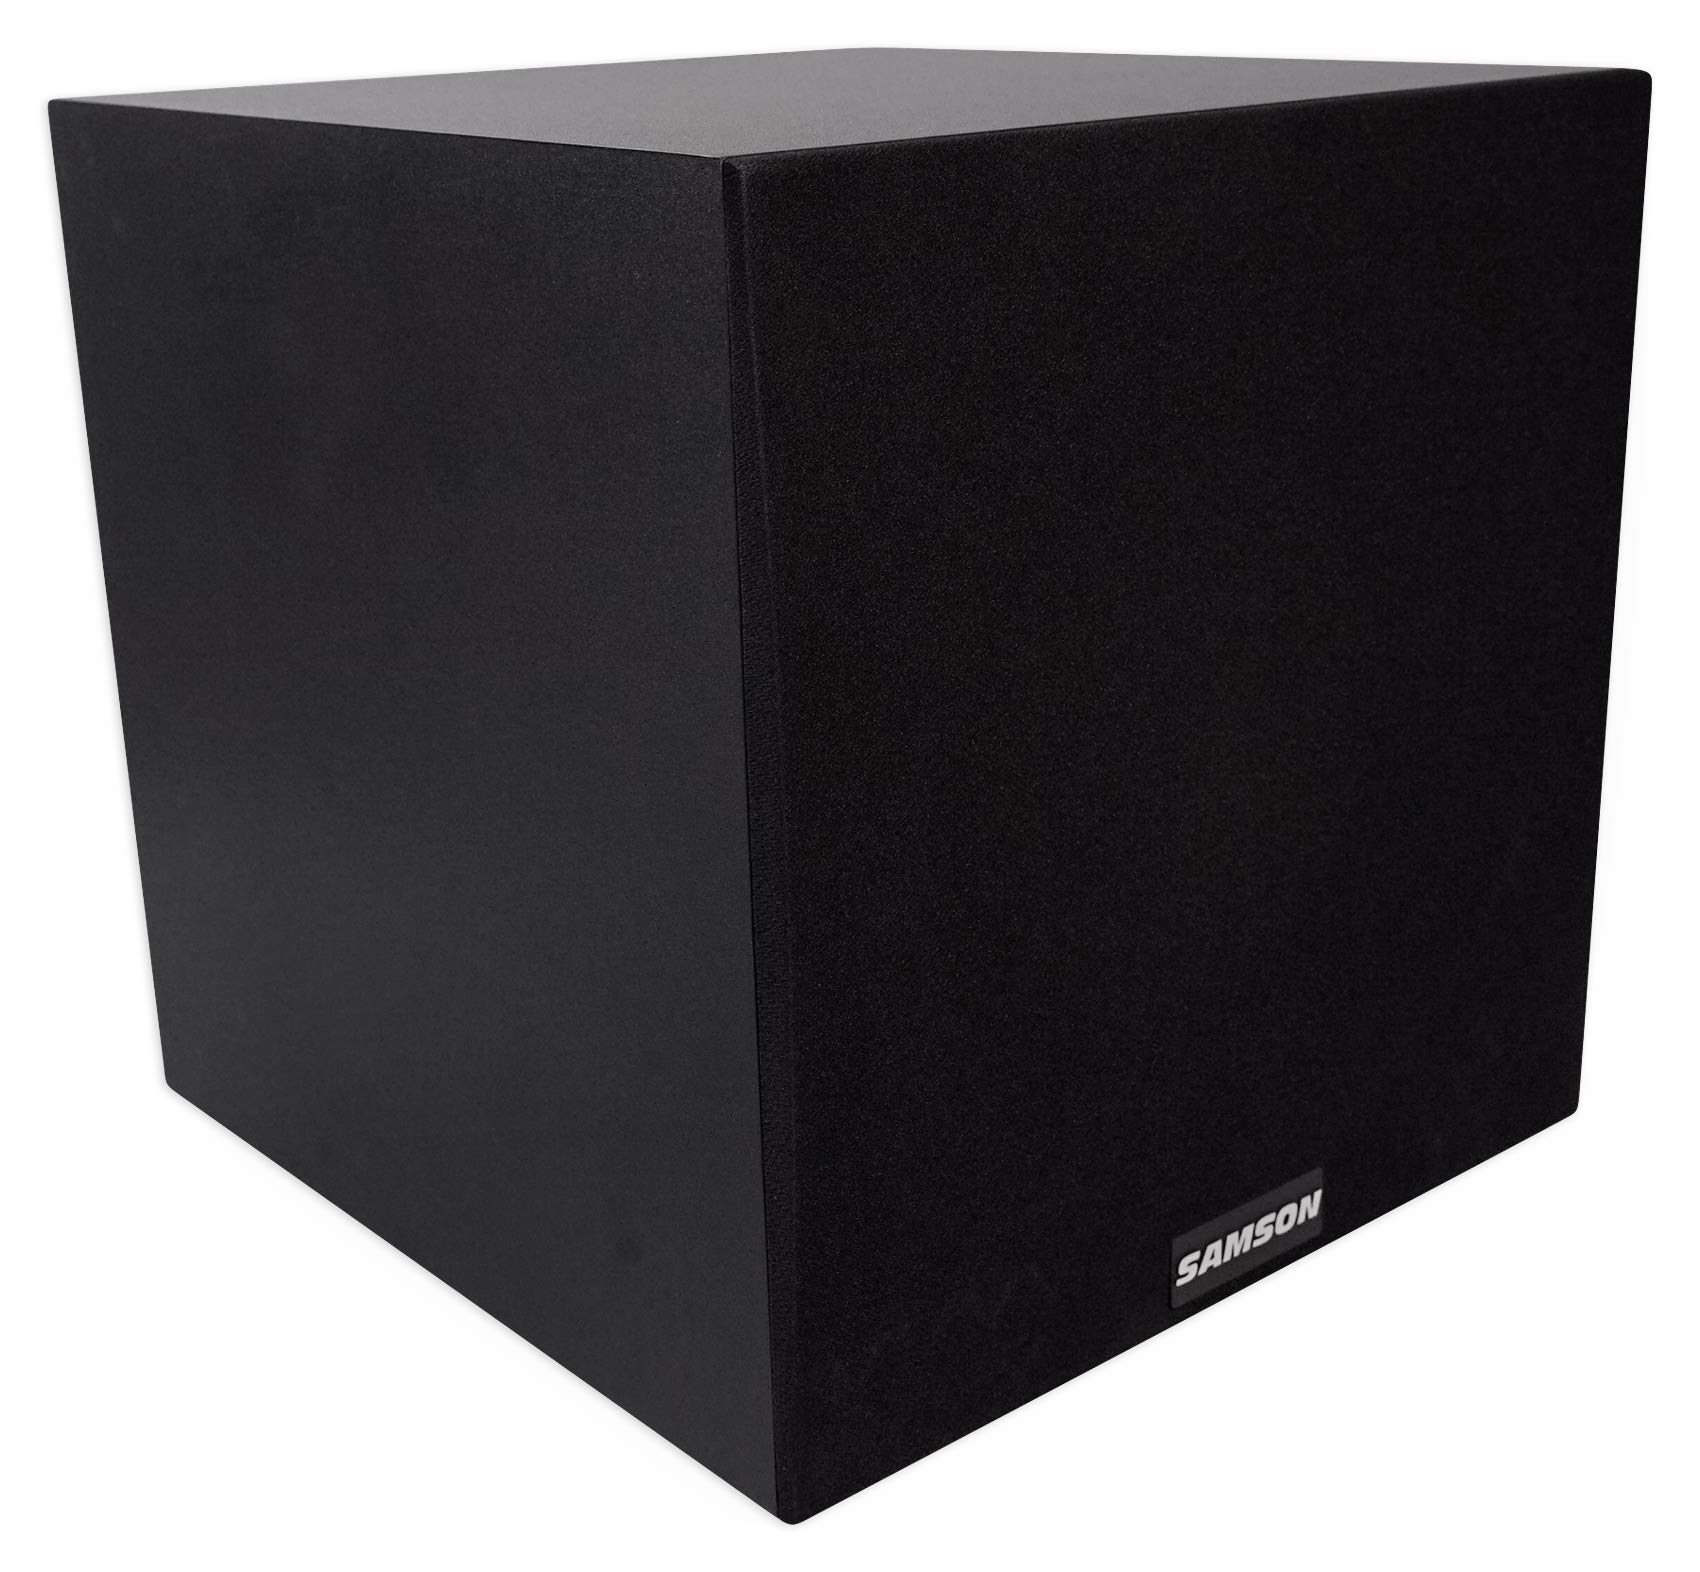 Samson MediaOne 10S 10'' 100 Watt Powered Gaming Twitch Live Stream Subwoofer Sub by Samson Technologies (Image #2)